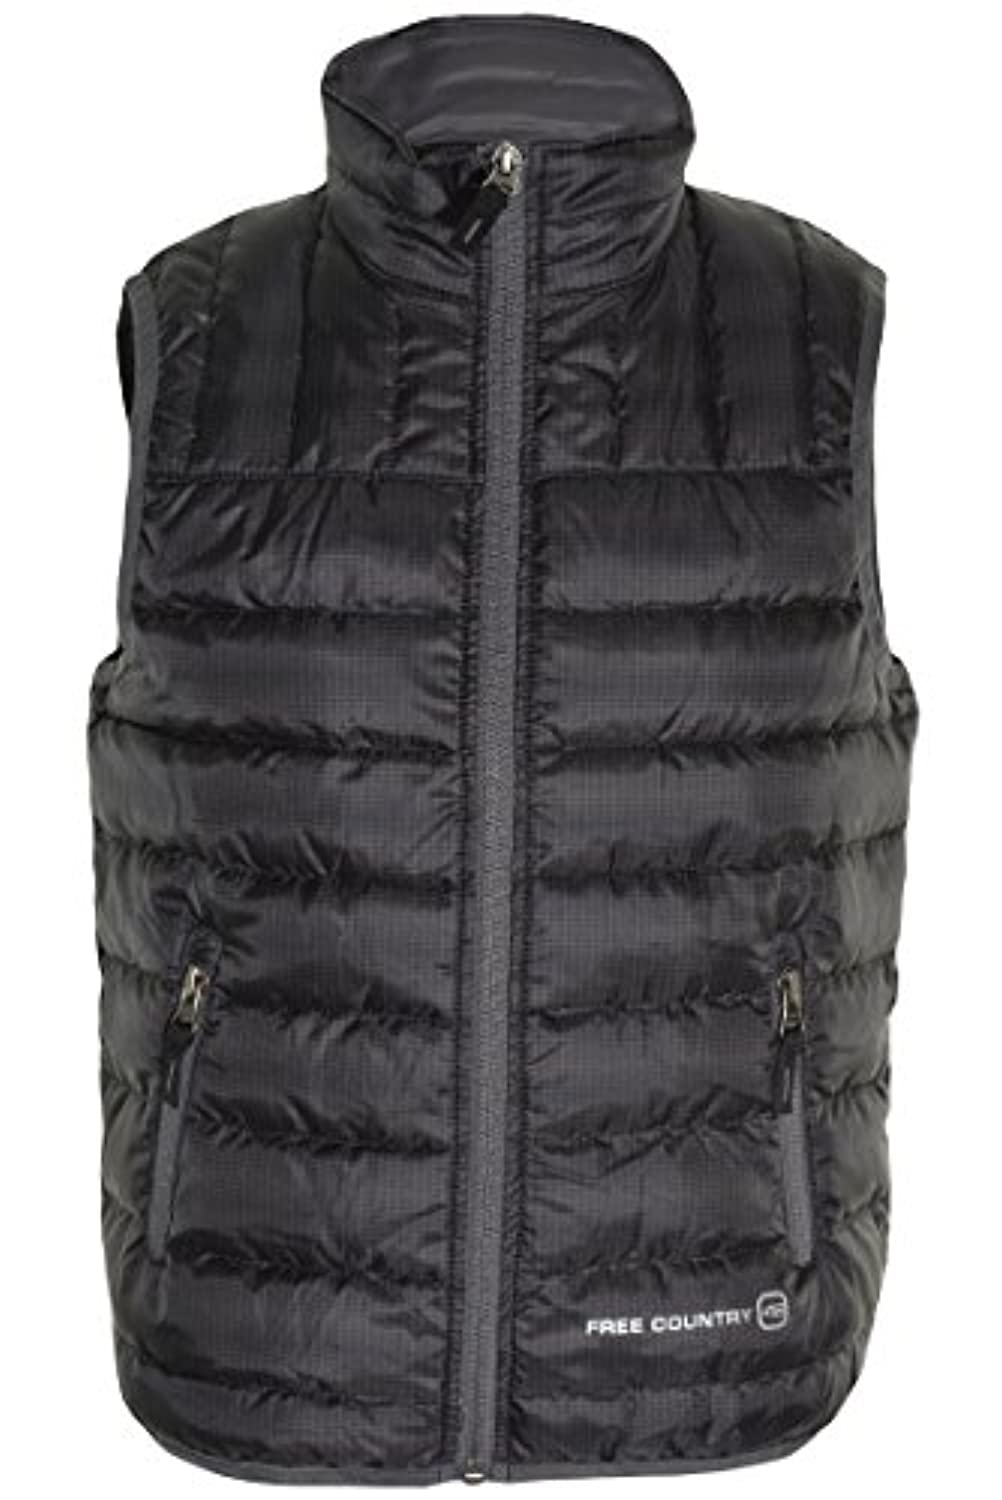 FREE COUNTRY ボーイズ パワーダウン ベスト Kids Down Vest